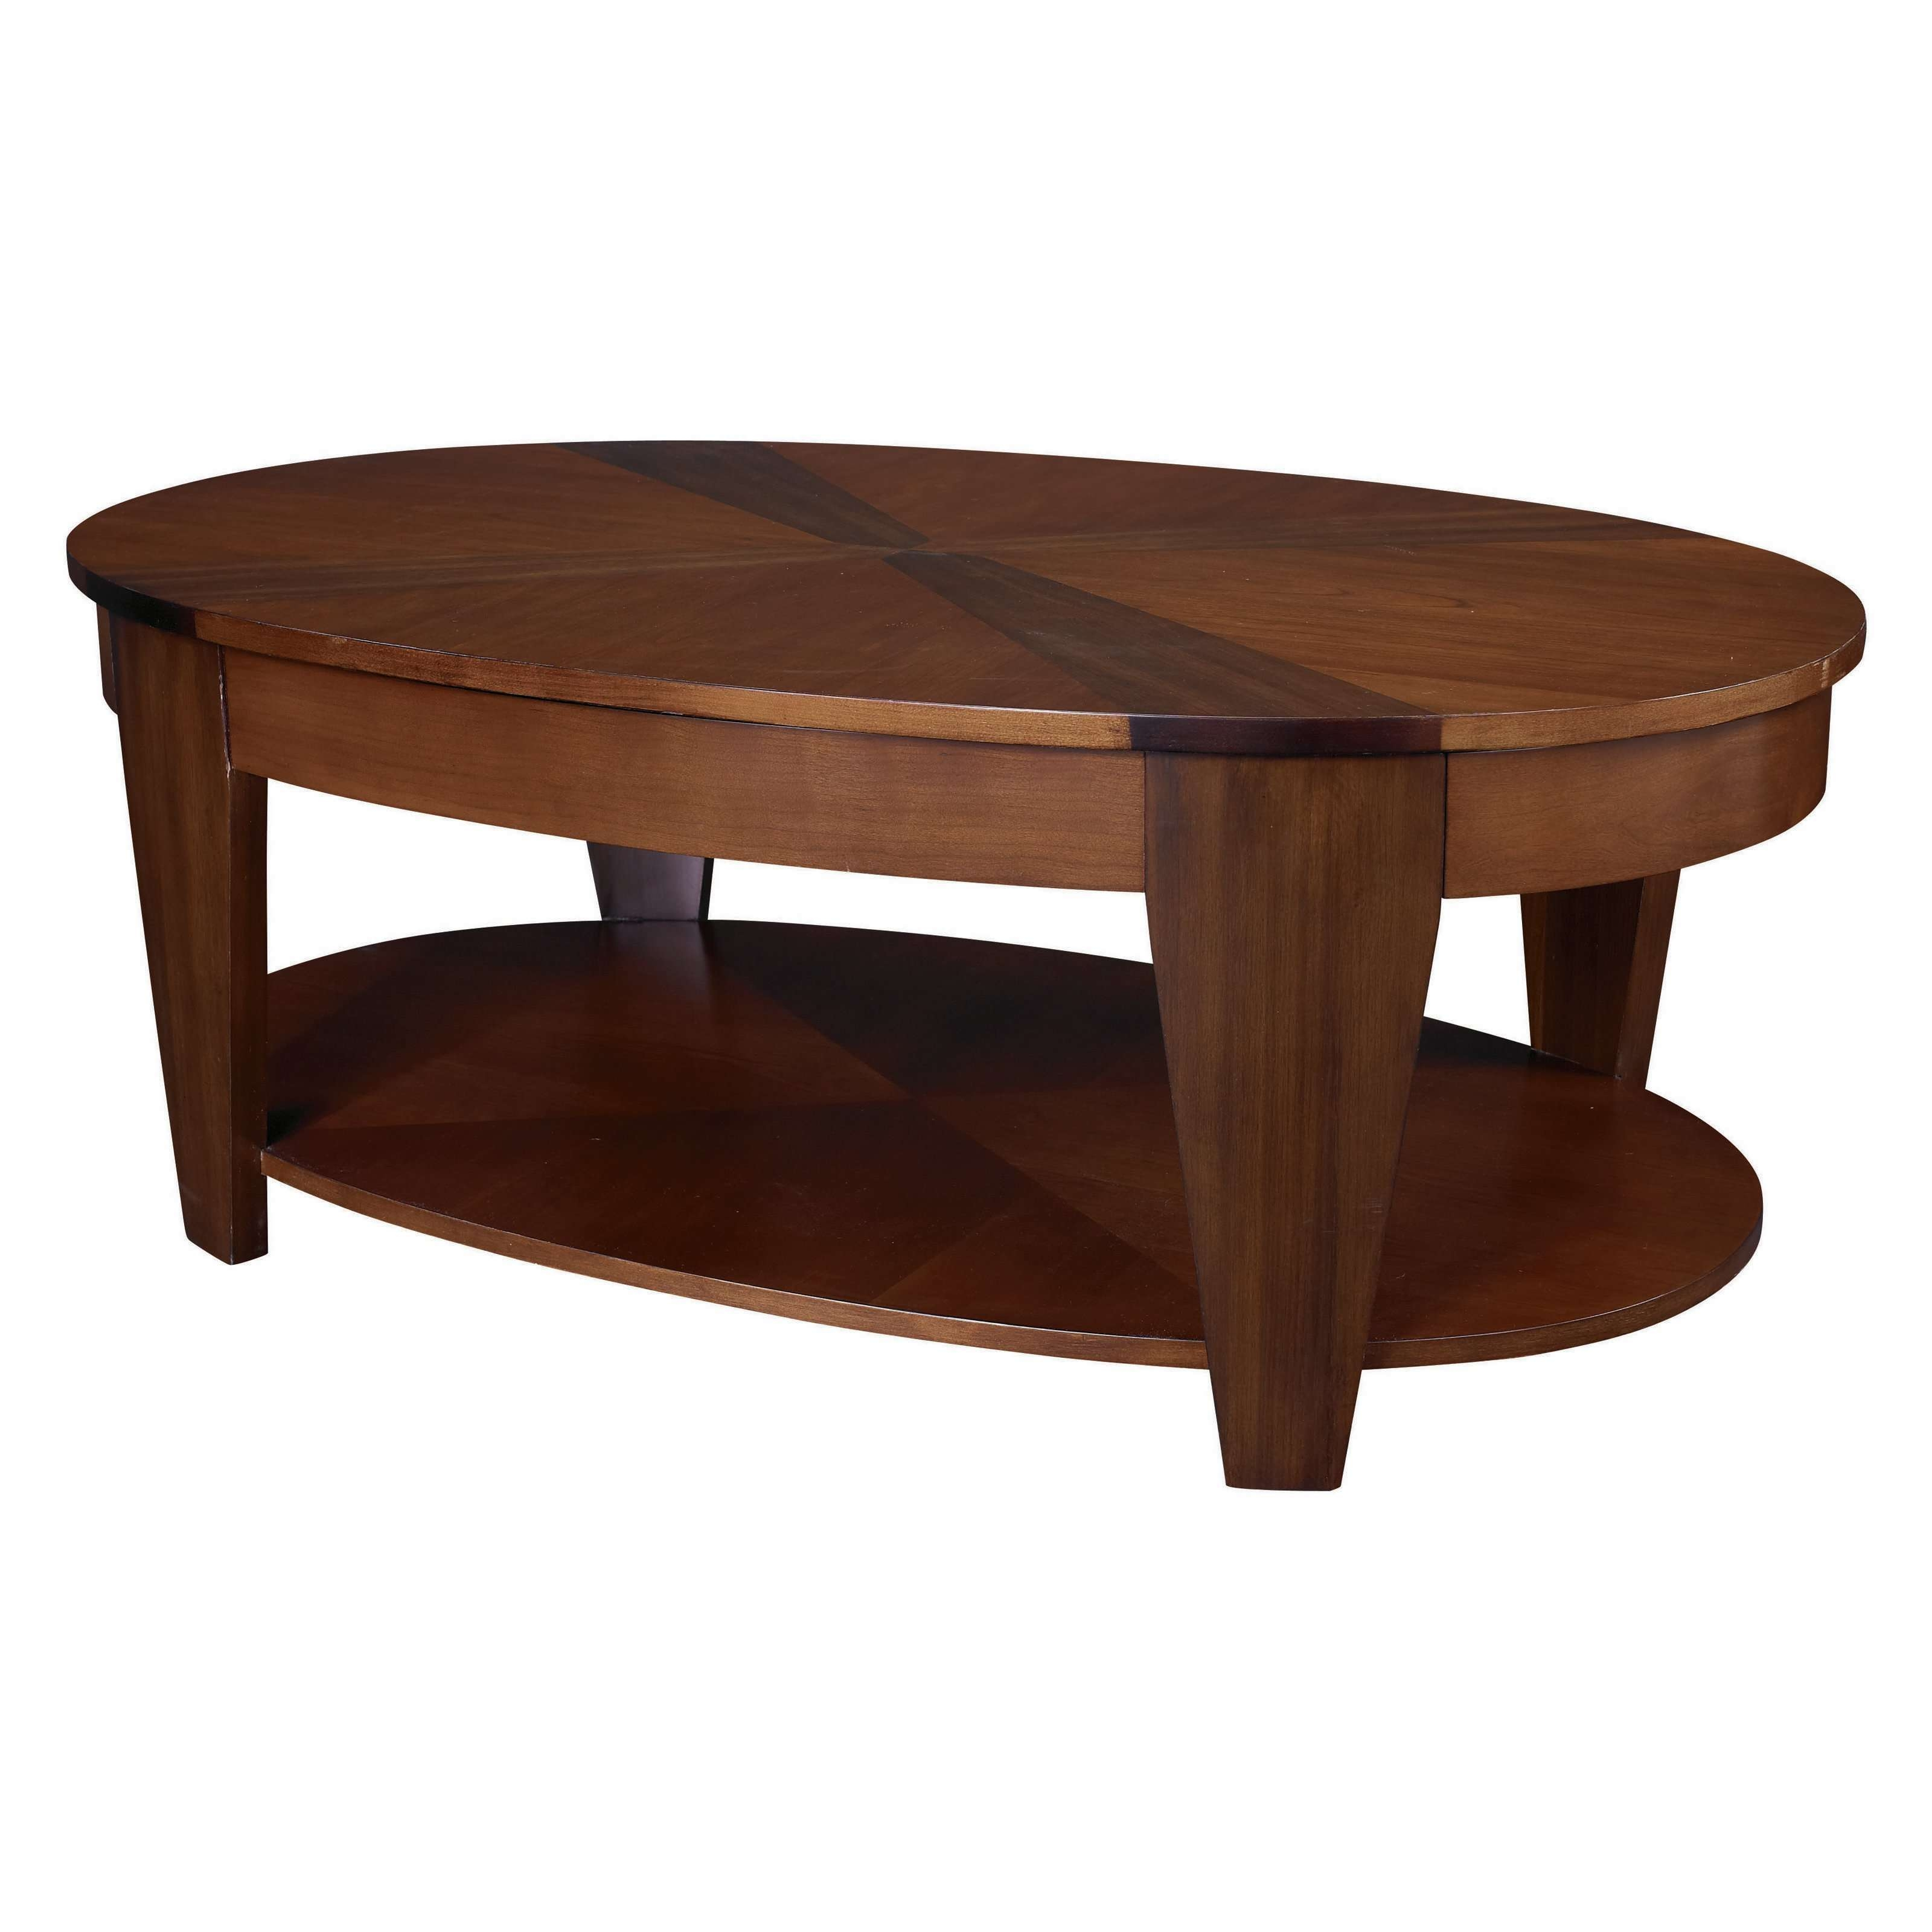 Newest Oblong Coffee Tables For Narrow Oval Table Tags : Exquisite Oval Coffee Table Mesmerizing (View 17 of 20)